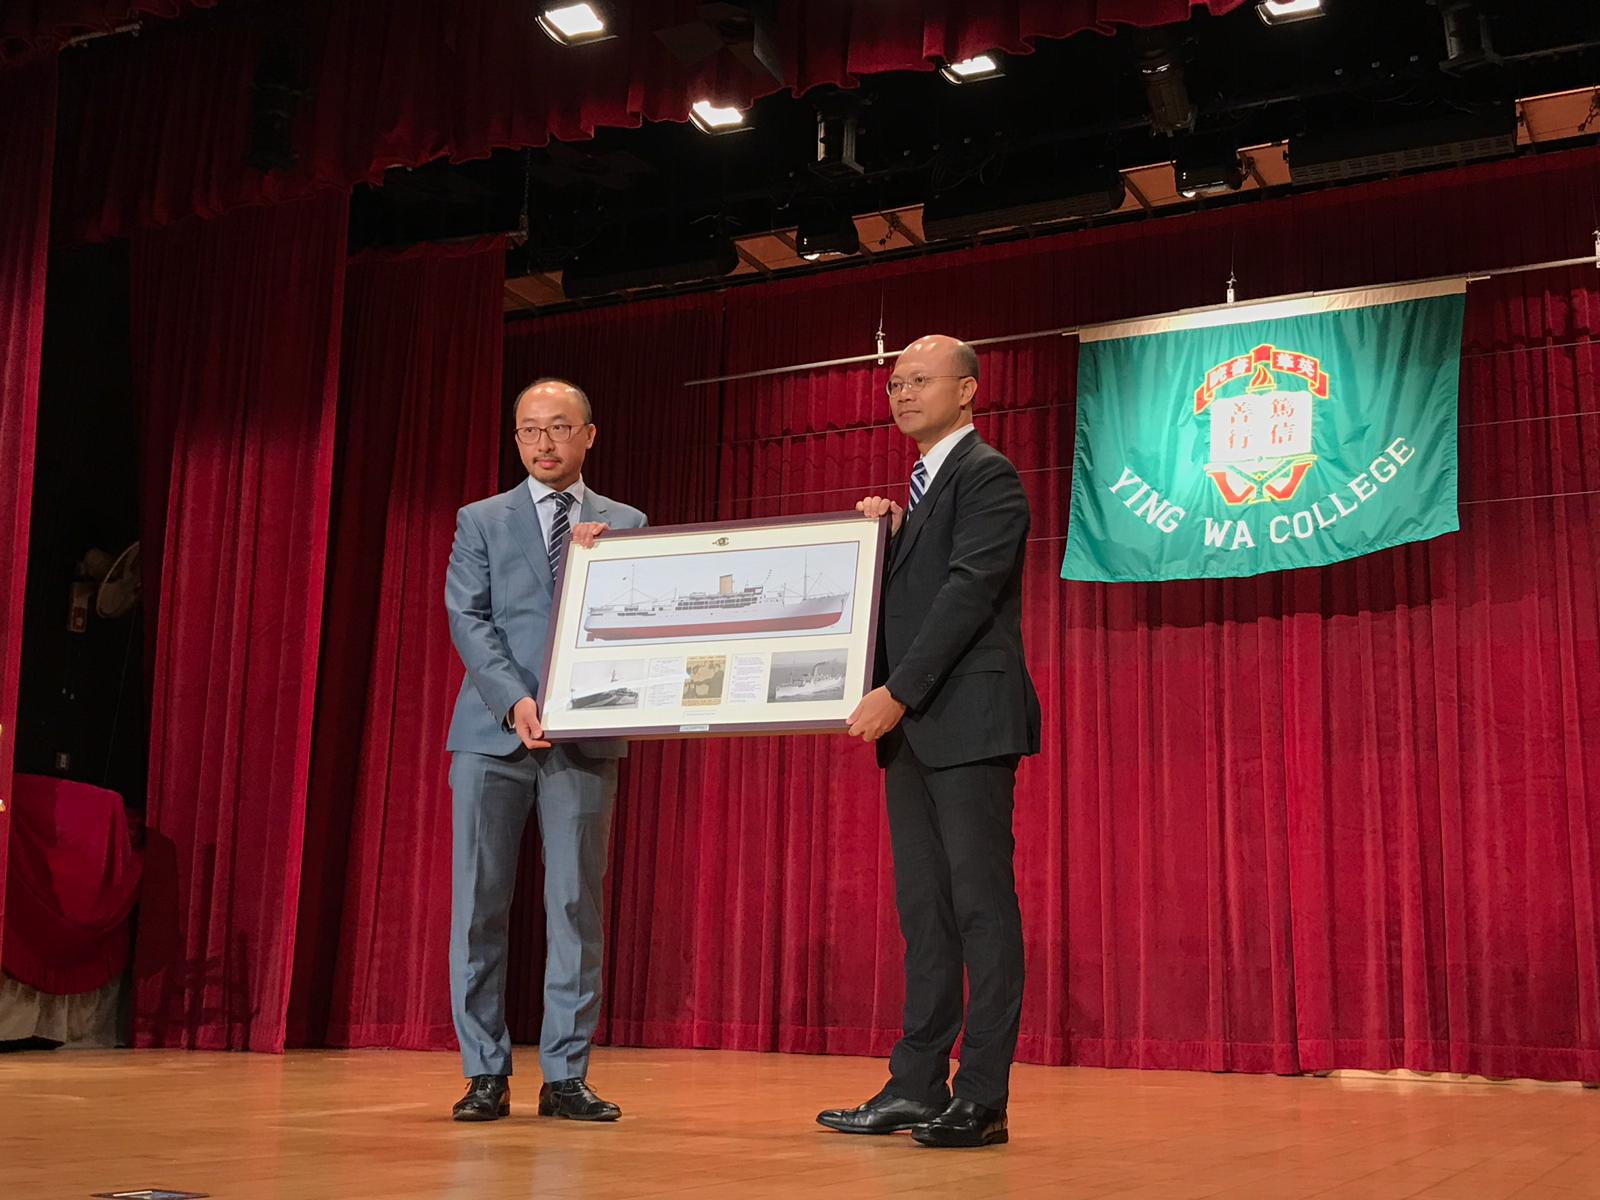 In October 2018, a special framed LINER DESIGNS print of the P&O liner 'Canton' was presented to Ying Wa College in Hong Kong.